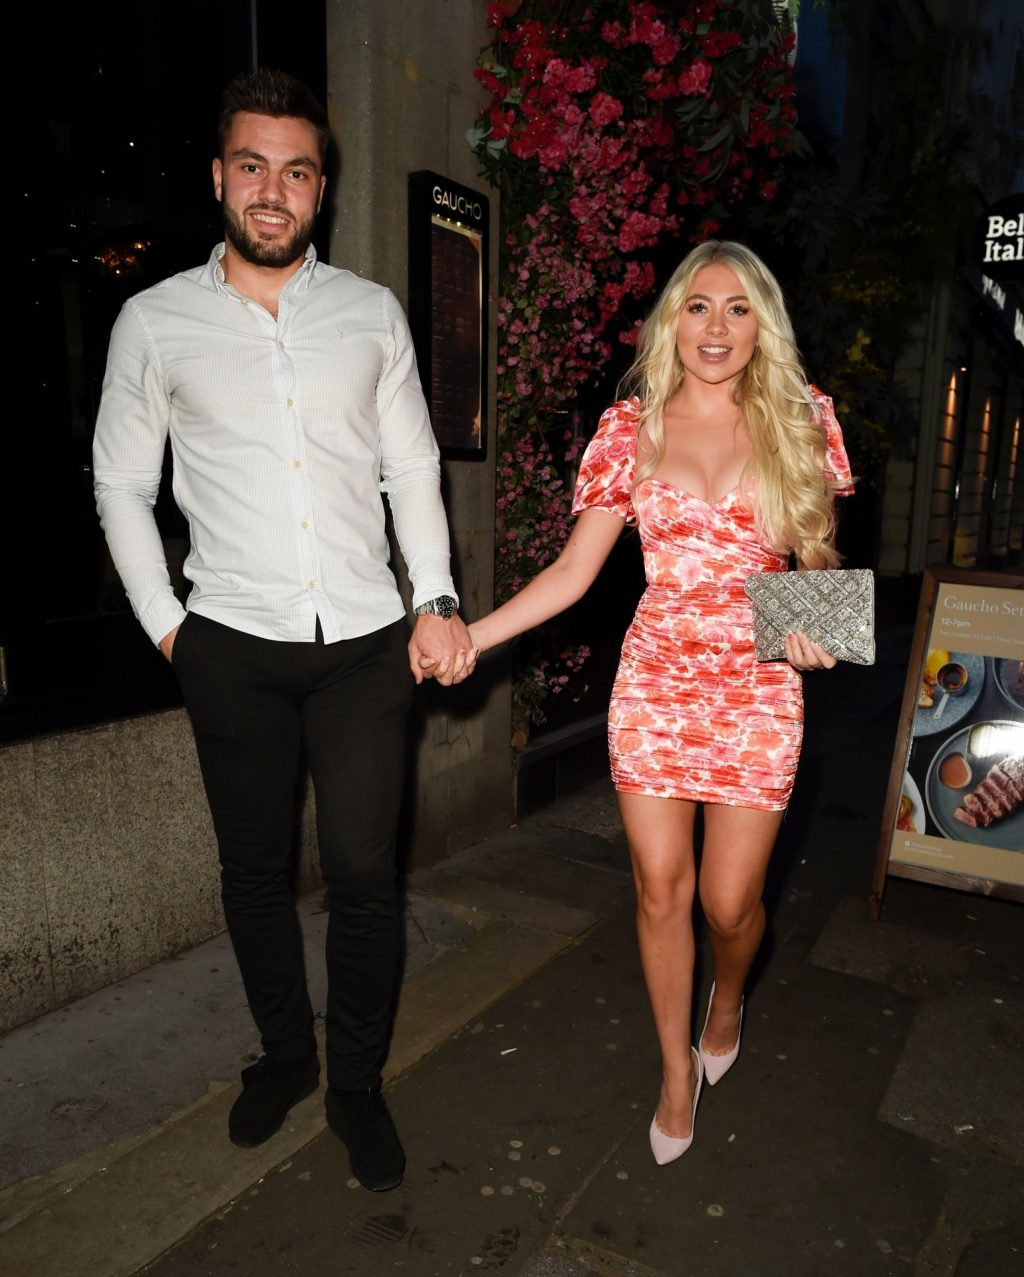 Paige Turley & Finn Tapp Are Pictured on a Date Night in Manchester (54 Photos)